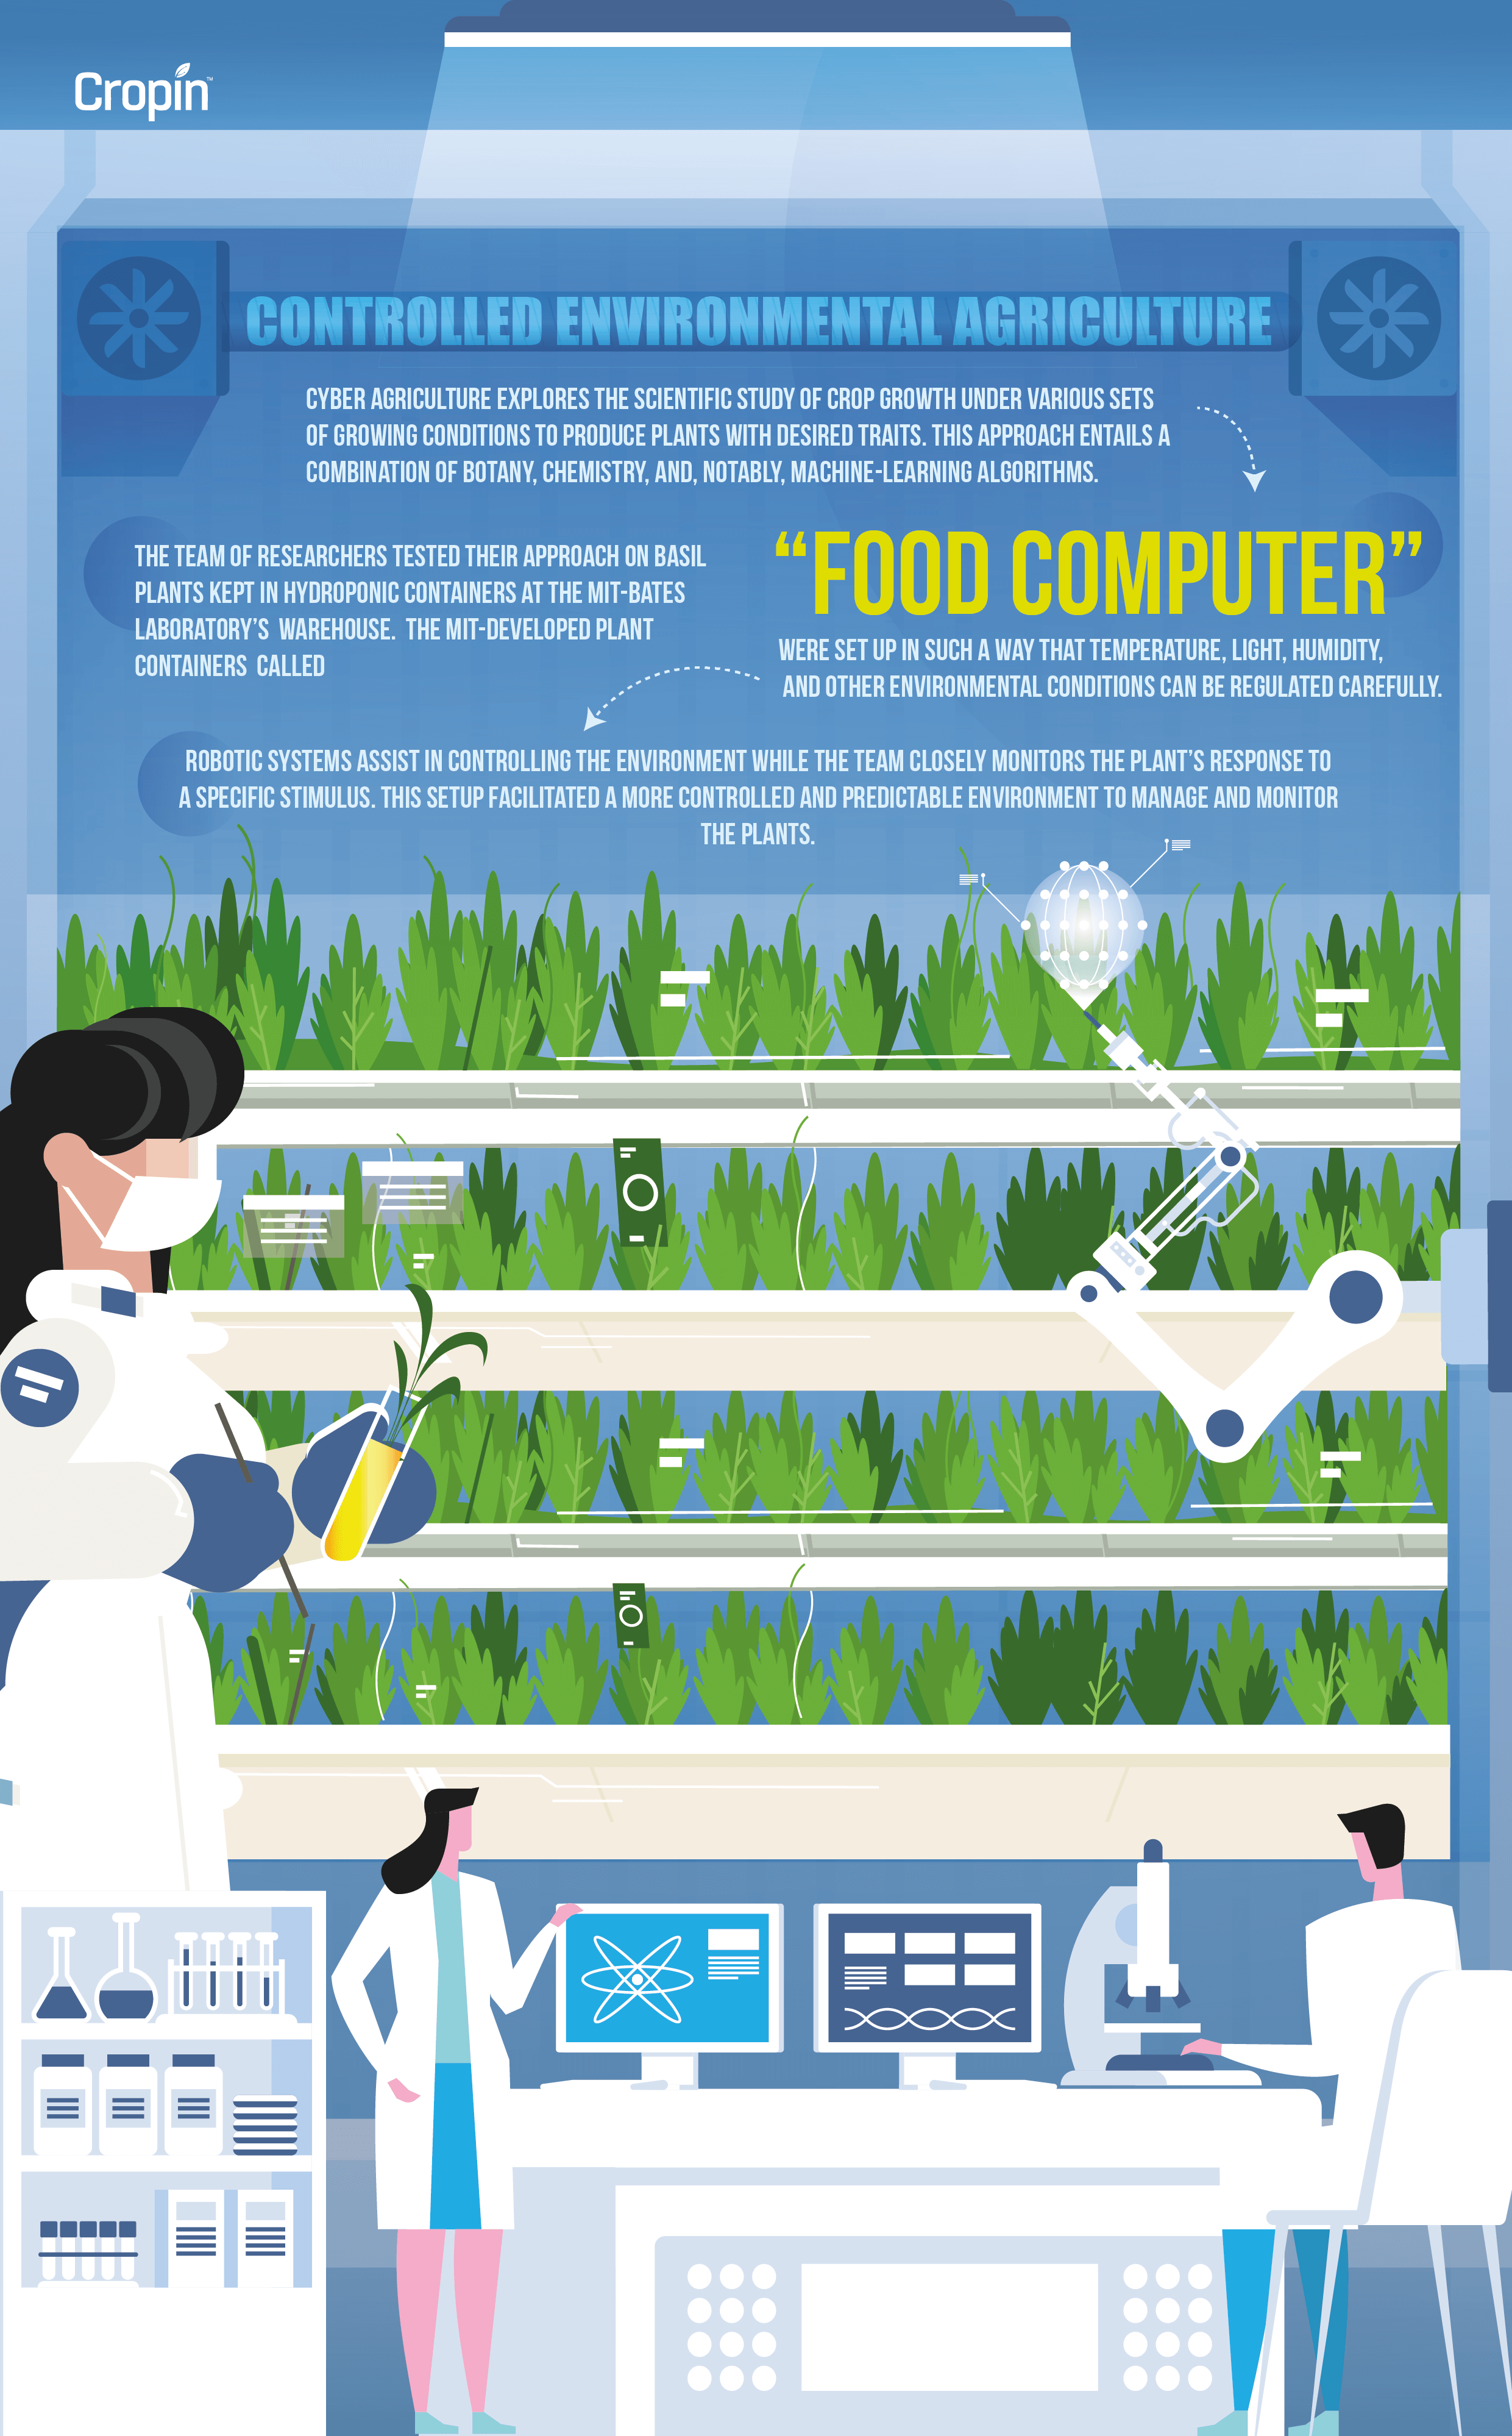 An infographic explaining the concept of cyber agriculture, also known as 'controlled environmental agriculture'